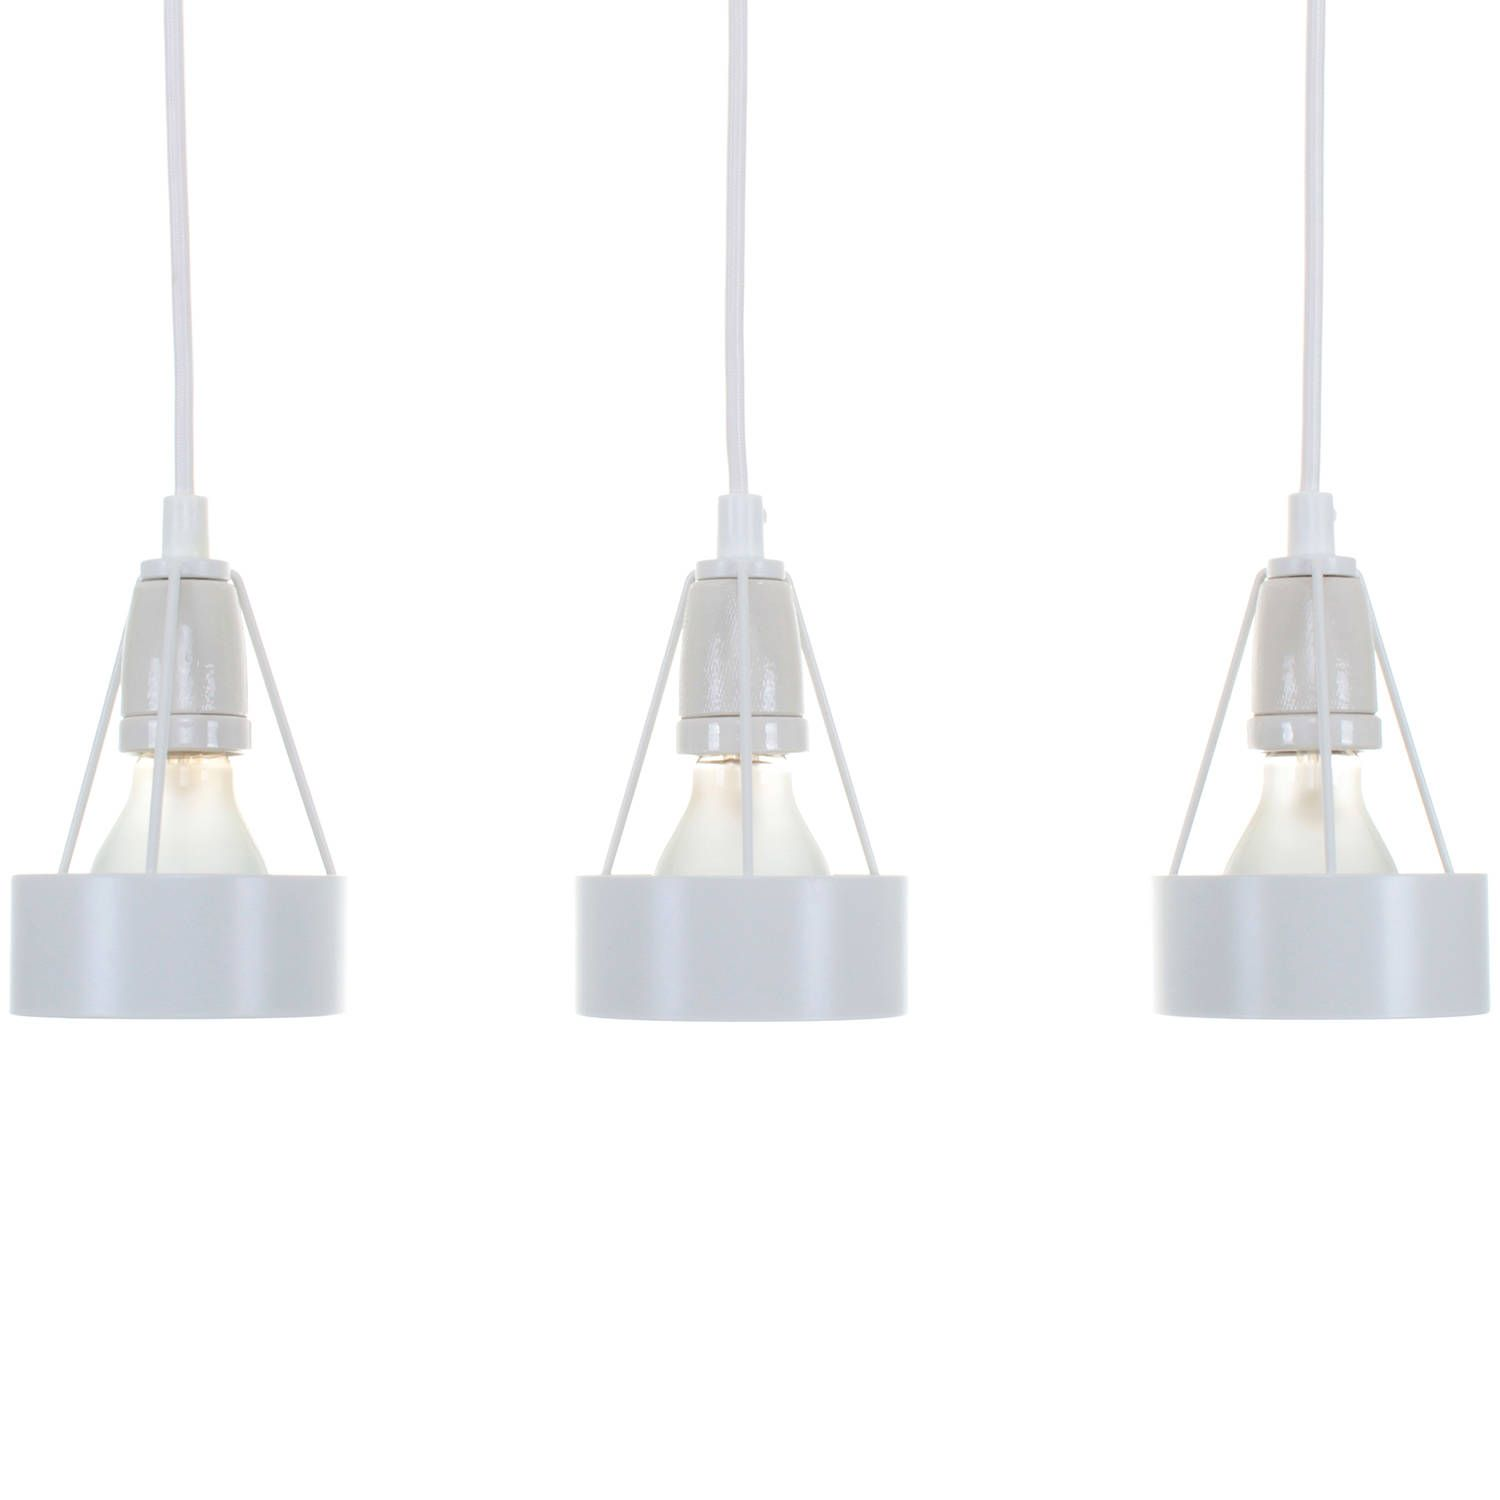 PAKHUS (set Of 3), White Pendants By Erik Møllers Tegnestue, 1984, Louis  Poulsen. Danish Mid Century Design. Minimalist White Hanging Lights By ...